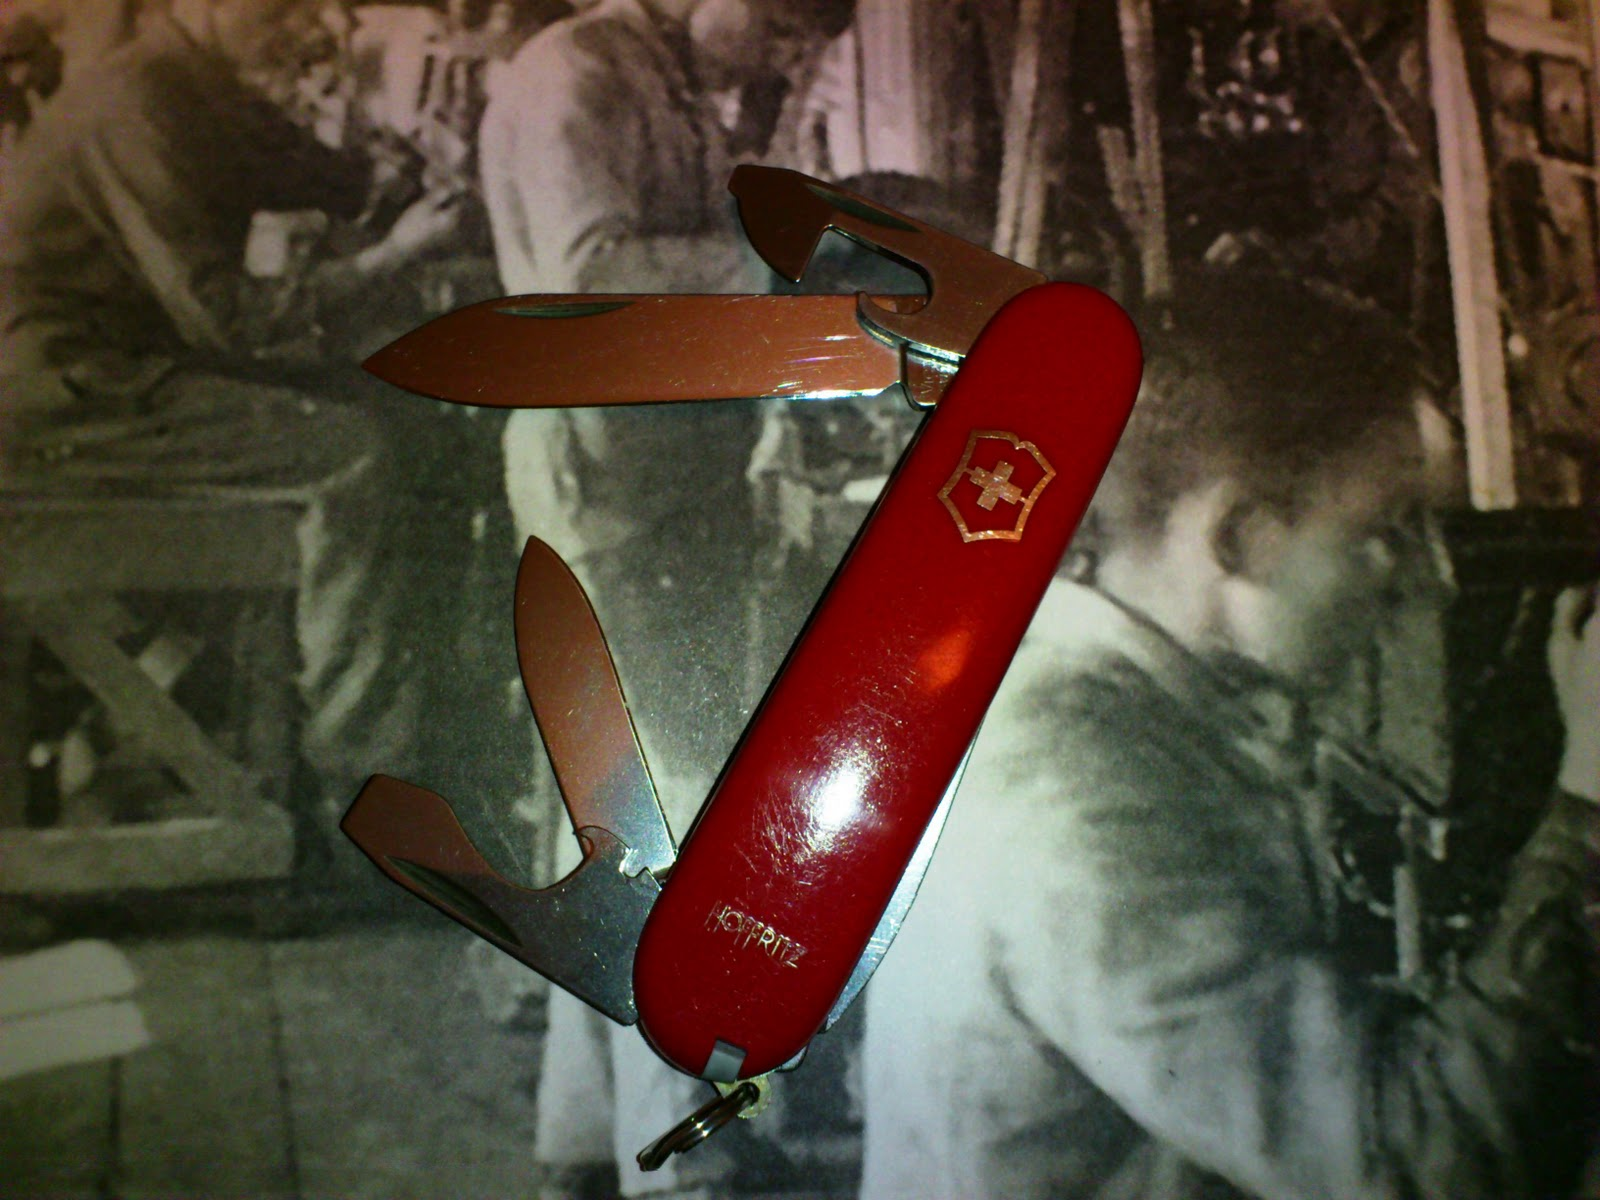 Mario S Swiss Army Knives Victorinox Hoffritz Tinker